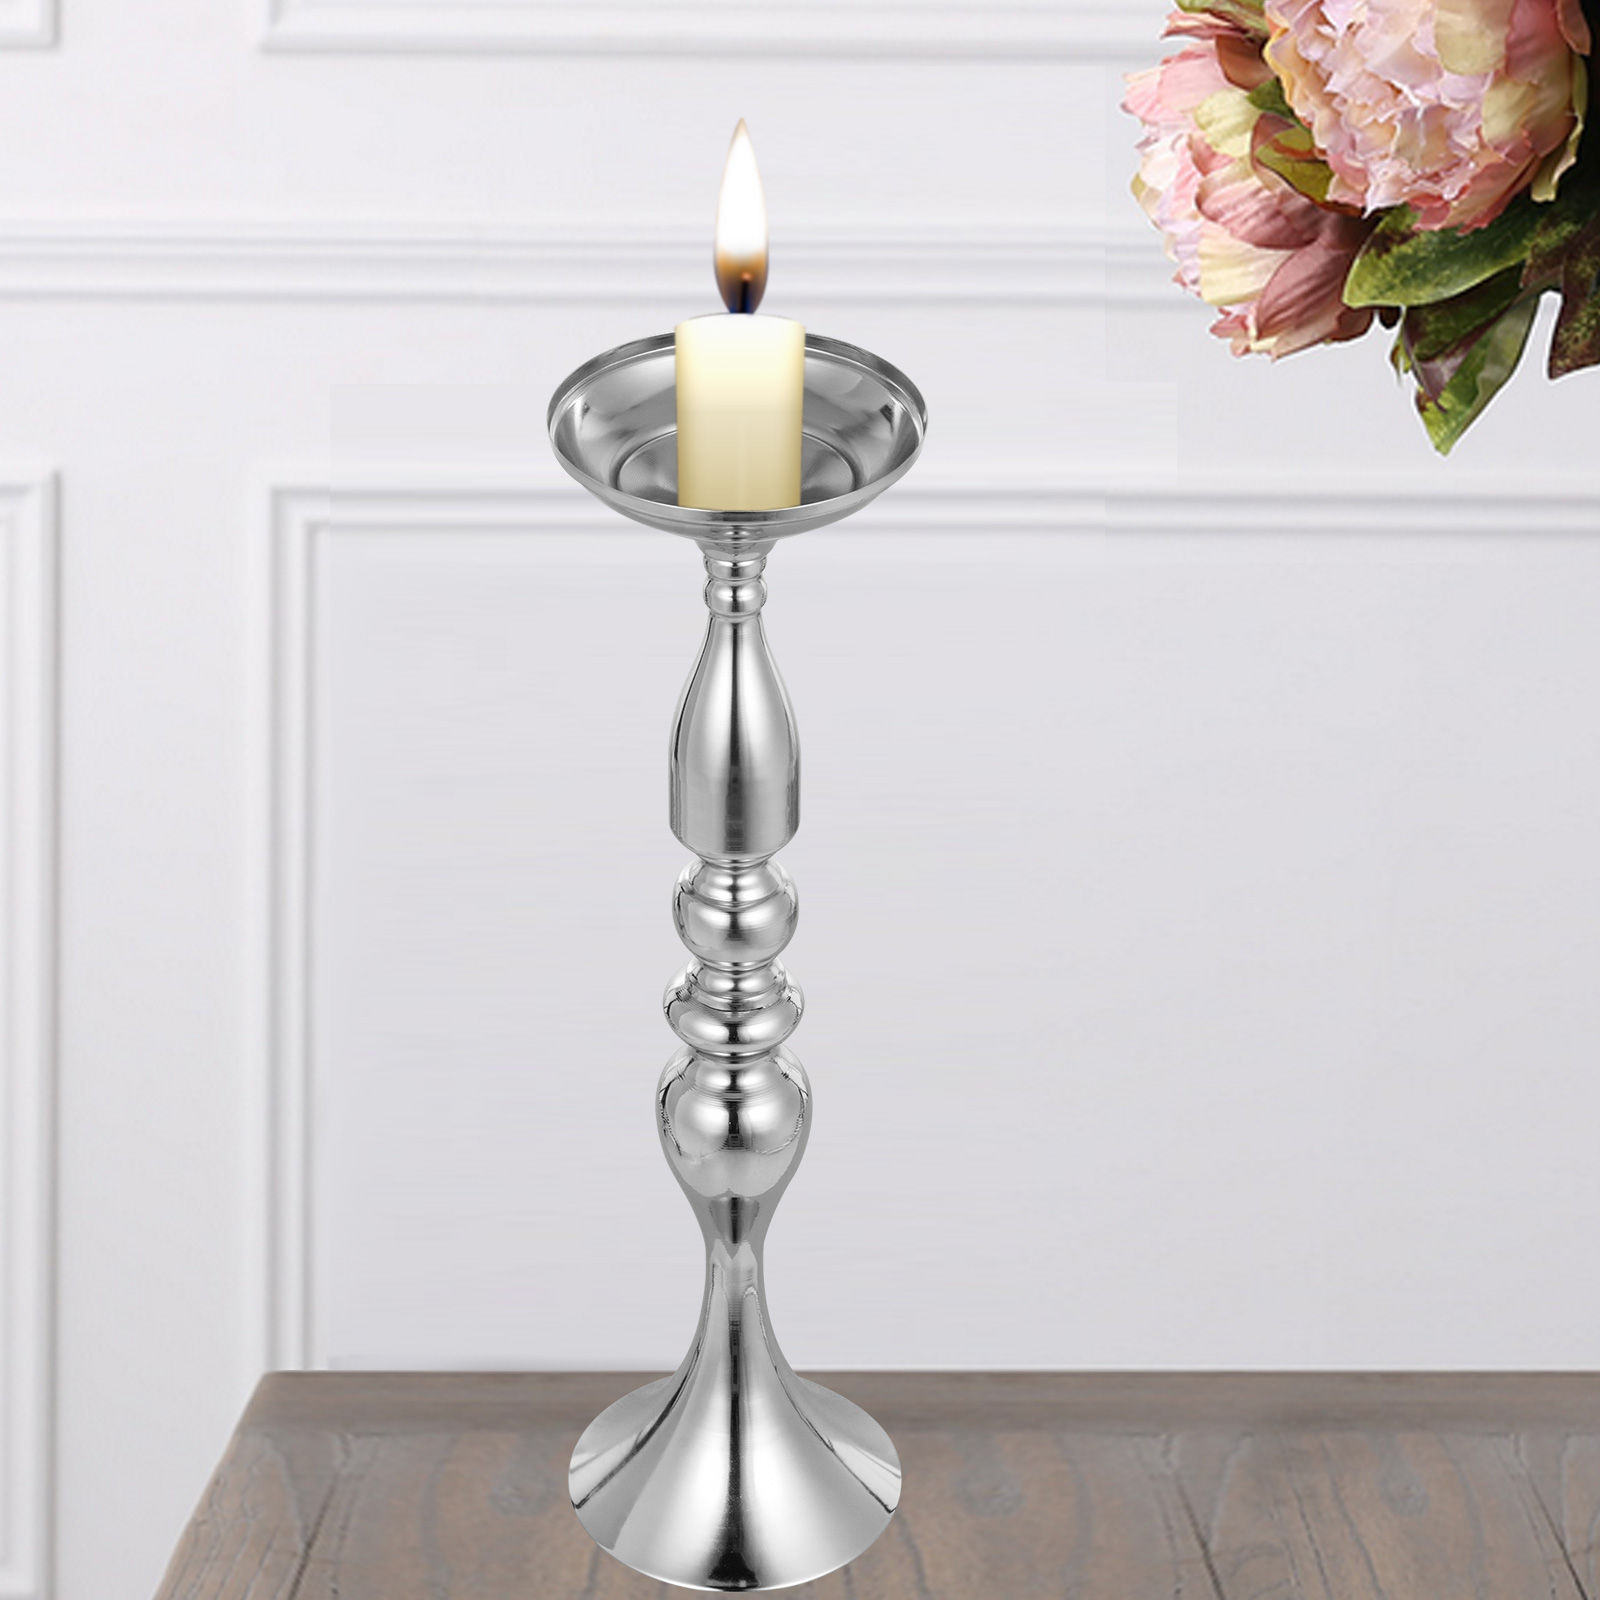 Flower-Rack-for-Wedding-Metal-Candle-Stand-4-11pcs-Centerpiece-Flower-Vase thumbnail 130